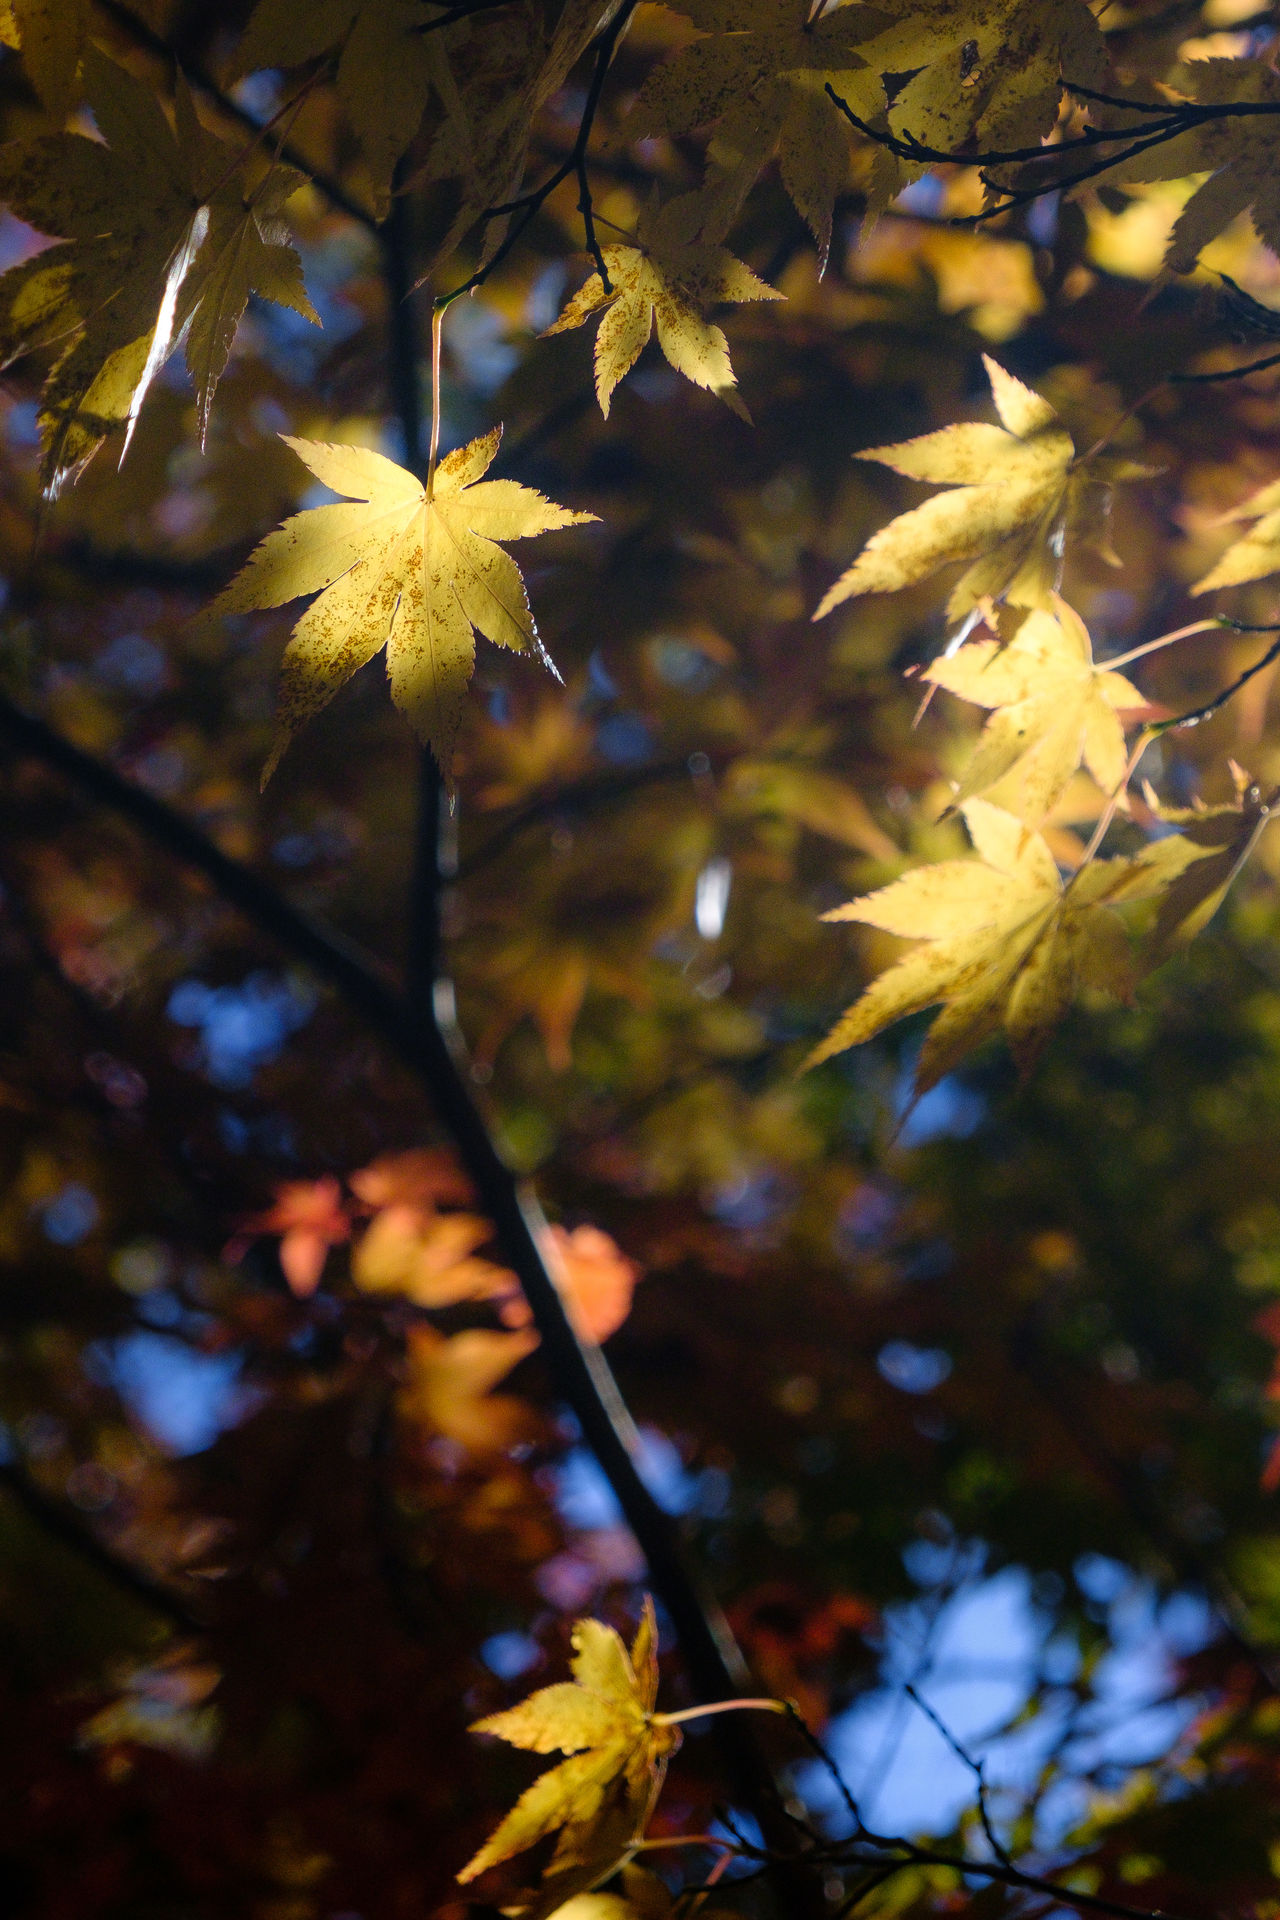 Fall maple leaves glow in the sun Leaf Nature Beauty In Nature Fall Collection Fall FoliageNature No People EyeEm Nature Lover Eye4photography  Beautiful Light Fall Colors Fall Beauty Fujifilm_xseries Fuji Xt2 Beauty In Nature Natural Beauty Fuji XT-2 Long Island E Subtle Colors